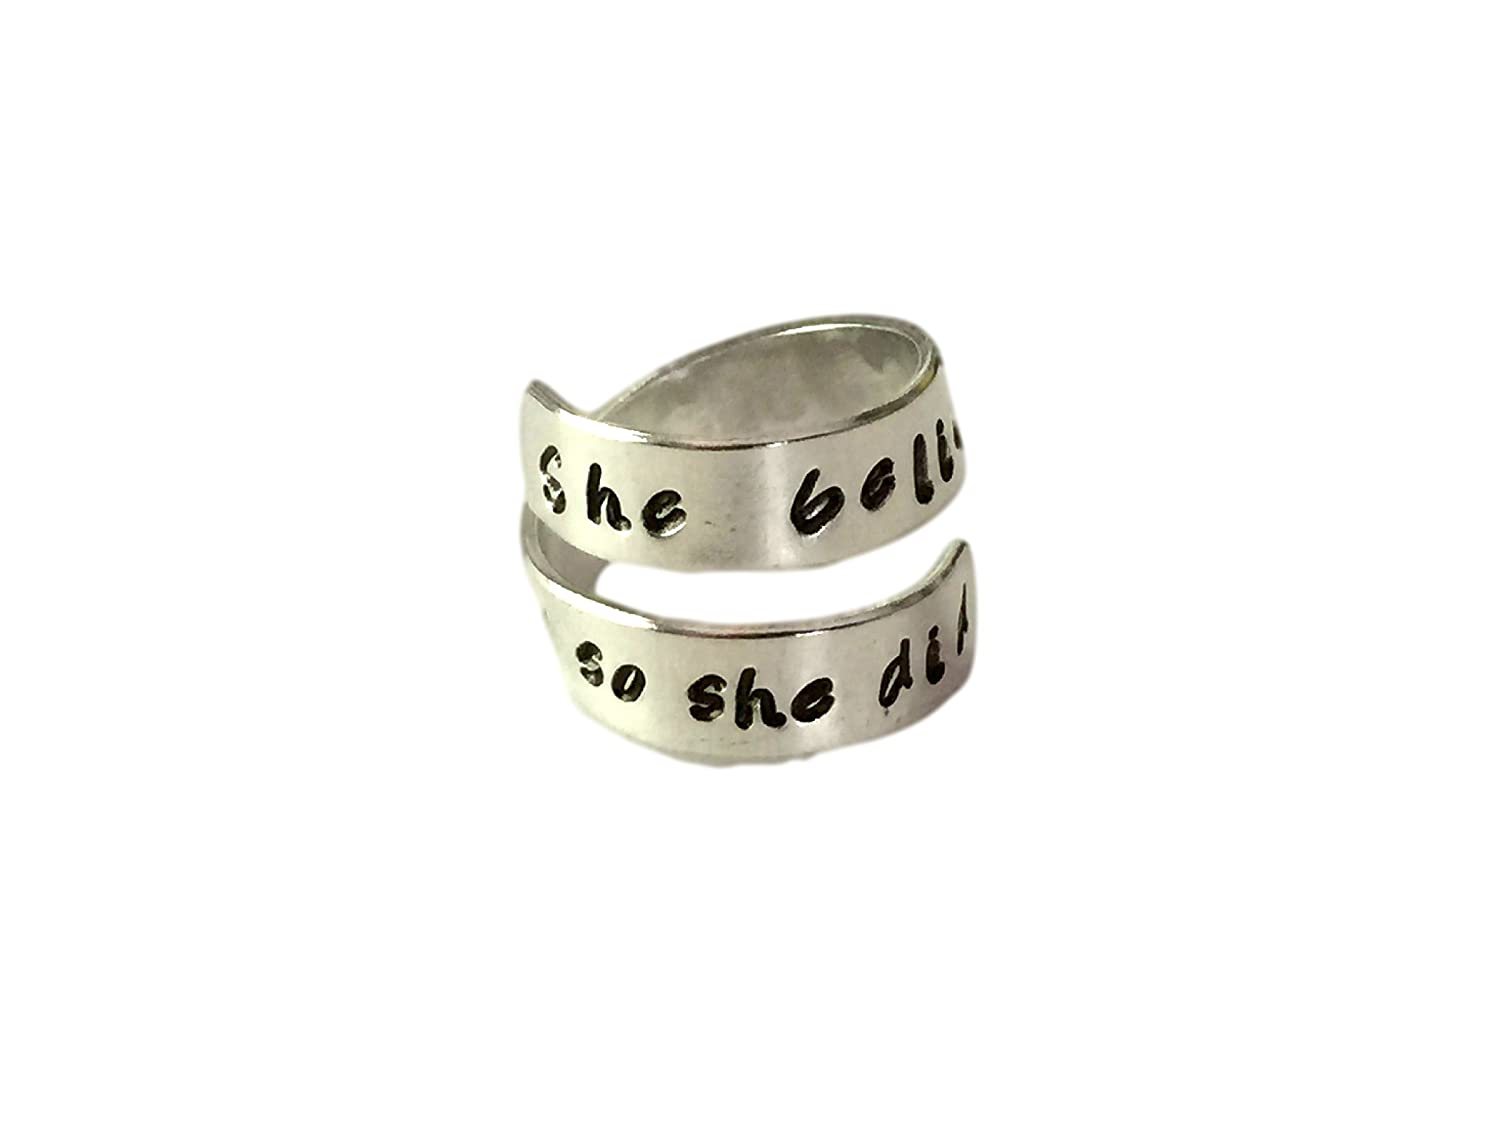 She Believed She Could, so She Did Spiral Twist Ring, Handstamped Aluminum Twist Wrap Ring, Graduation and Friend Gift Hand Trades